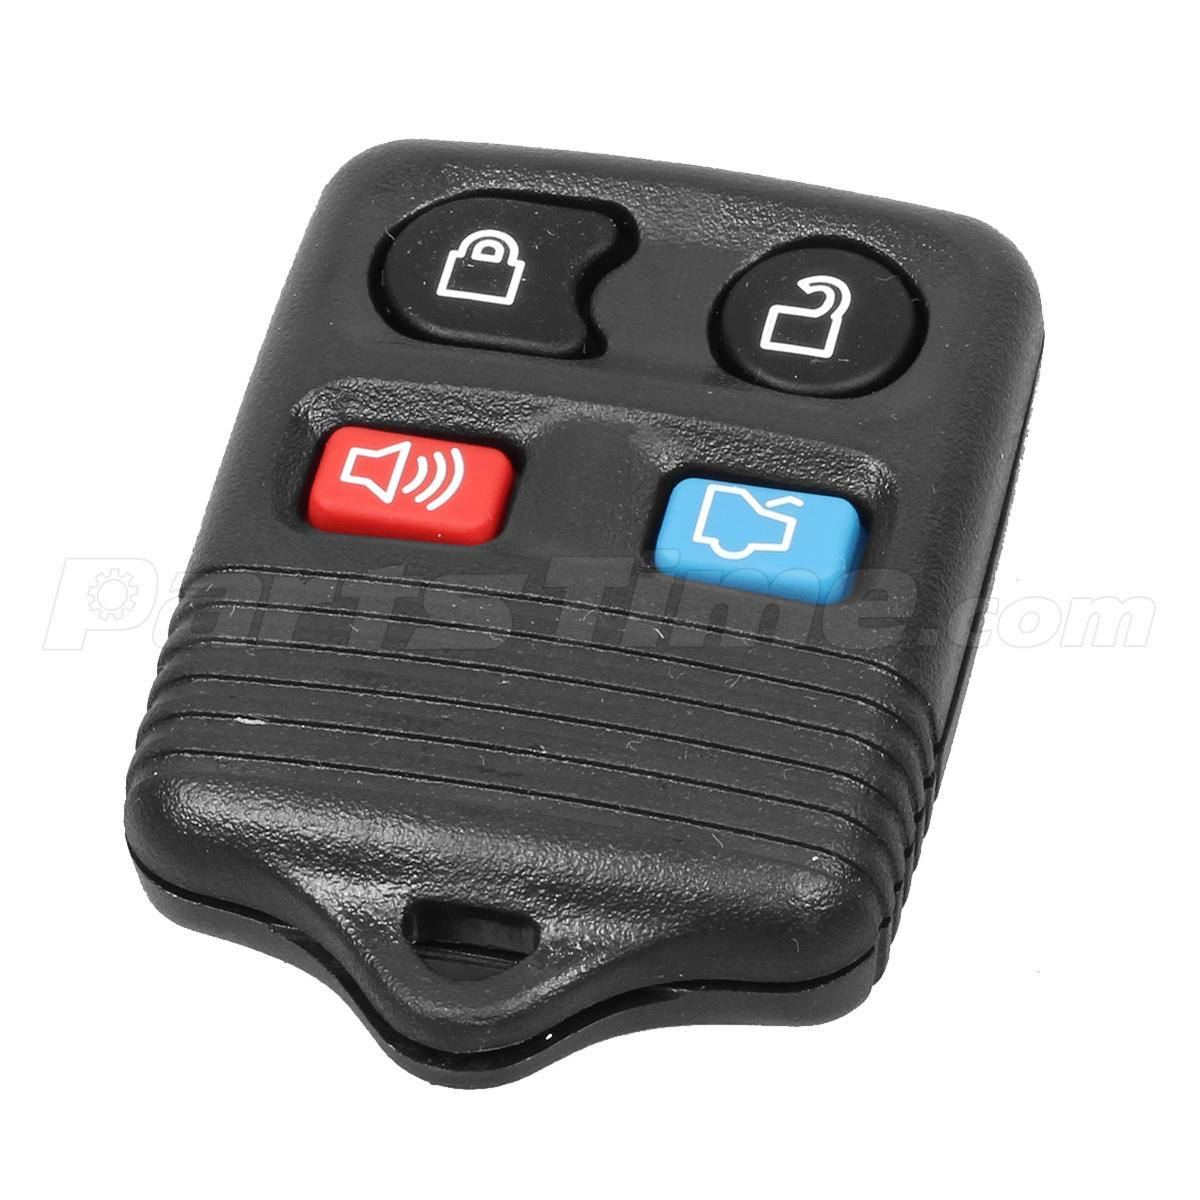 New Replacement Keyless Entry Remote Key Fob Clicker